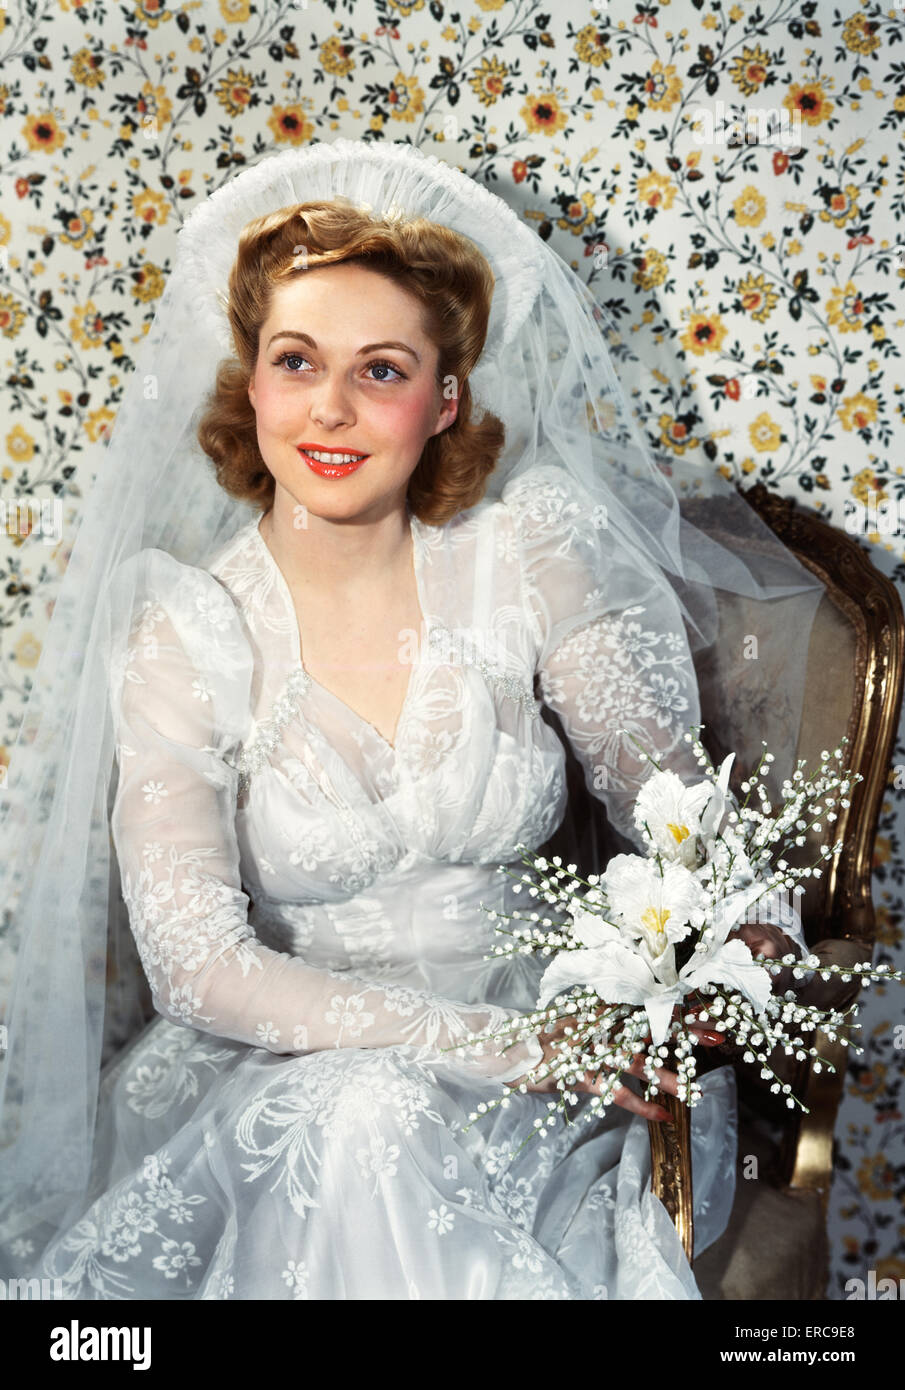 Vintage Wedding Stock Photos & Vintage Wedding Stock Images - Alamy